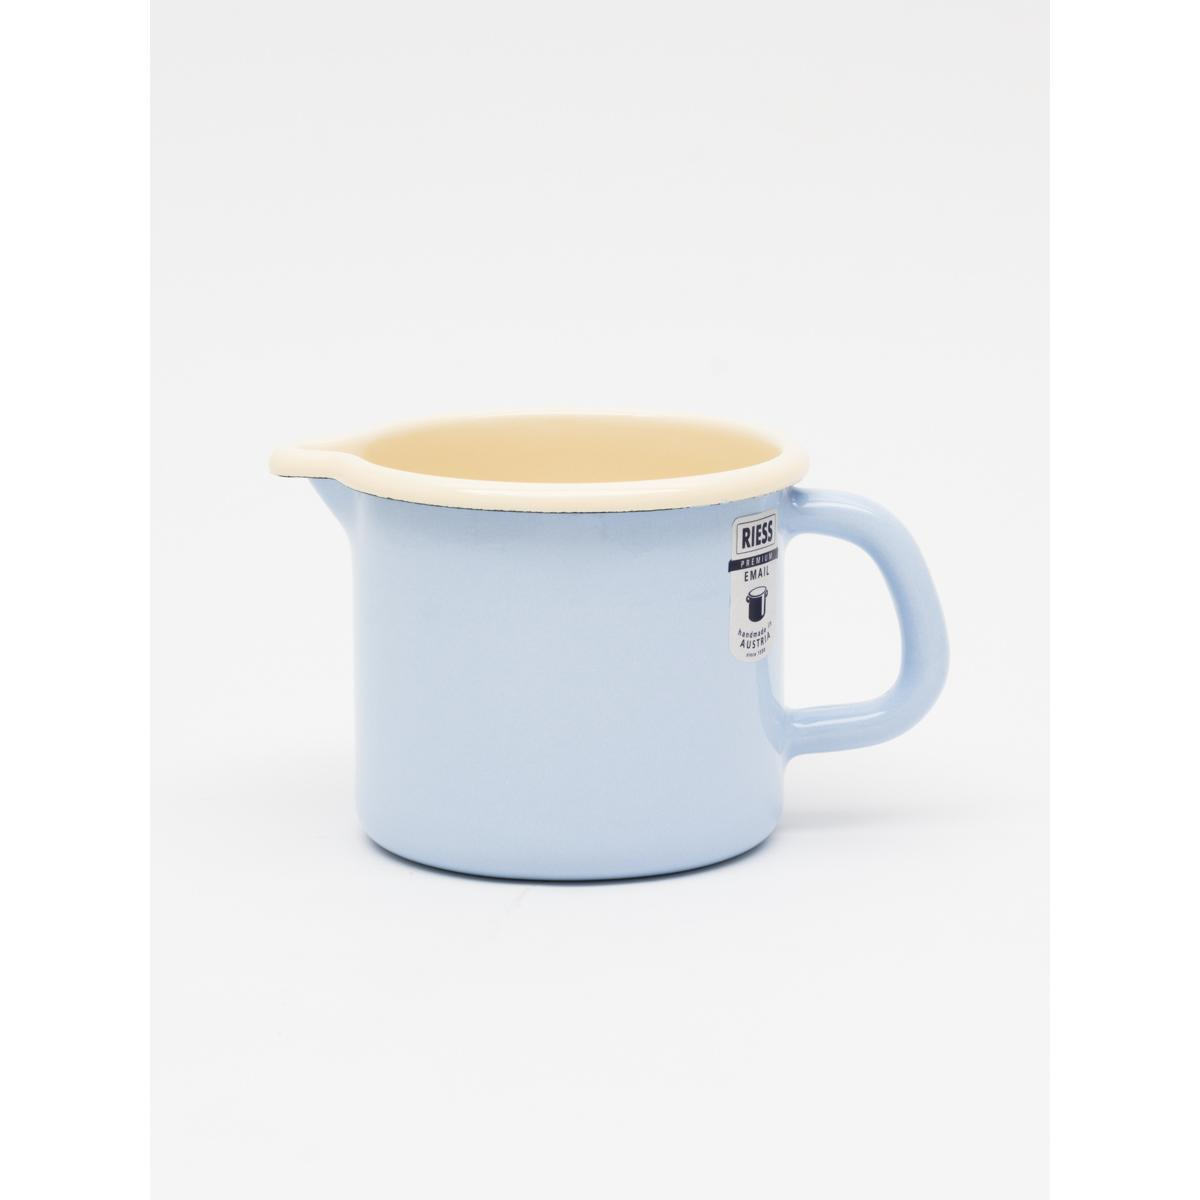 500ml enamel Jug - Lt. Blue